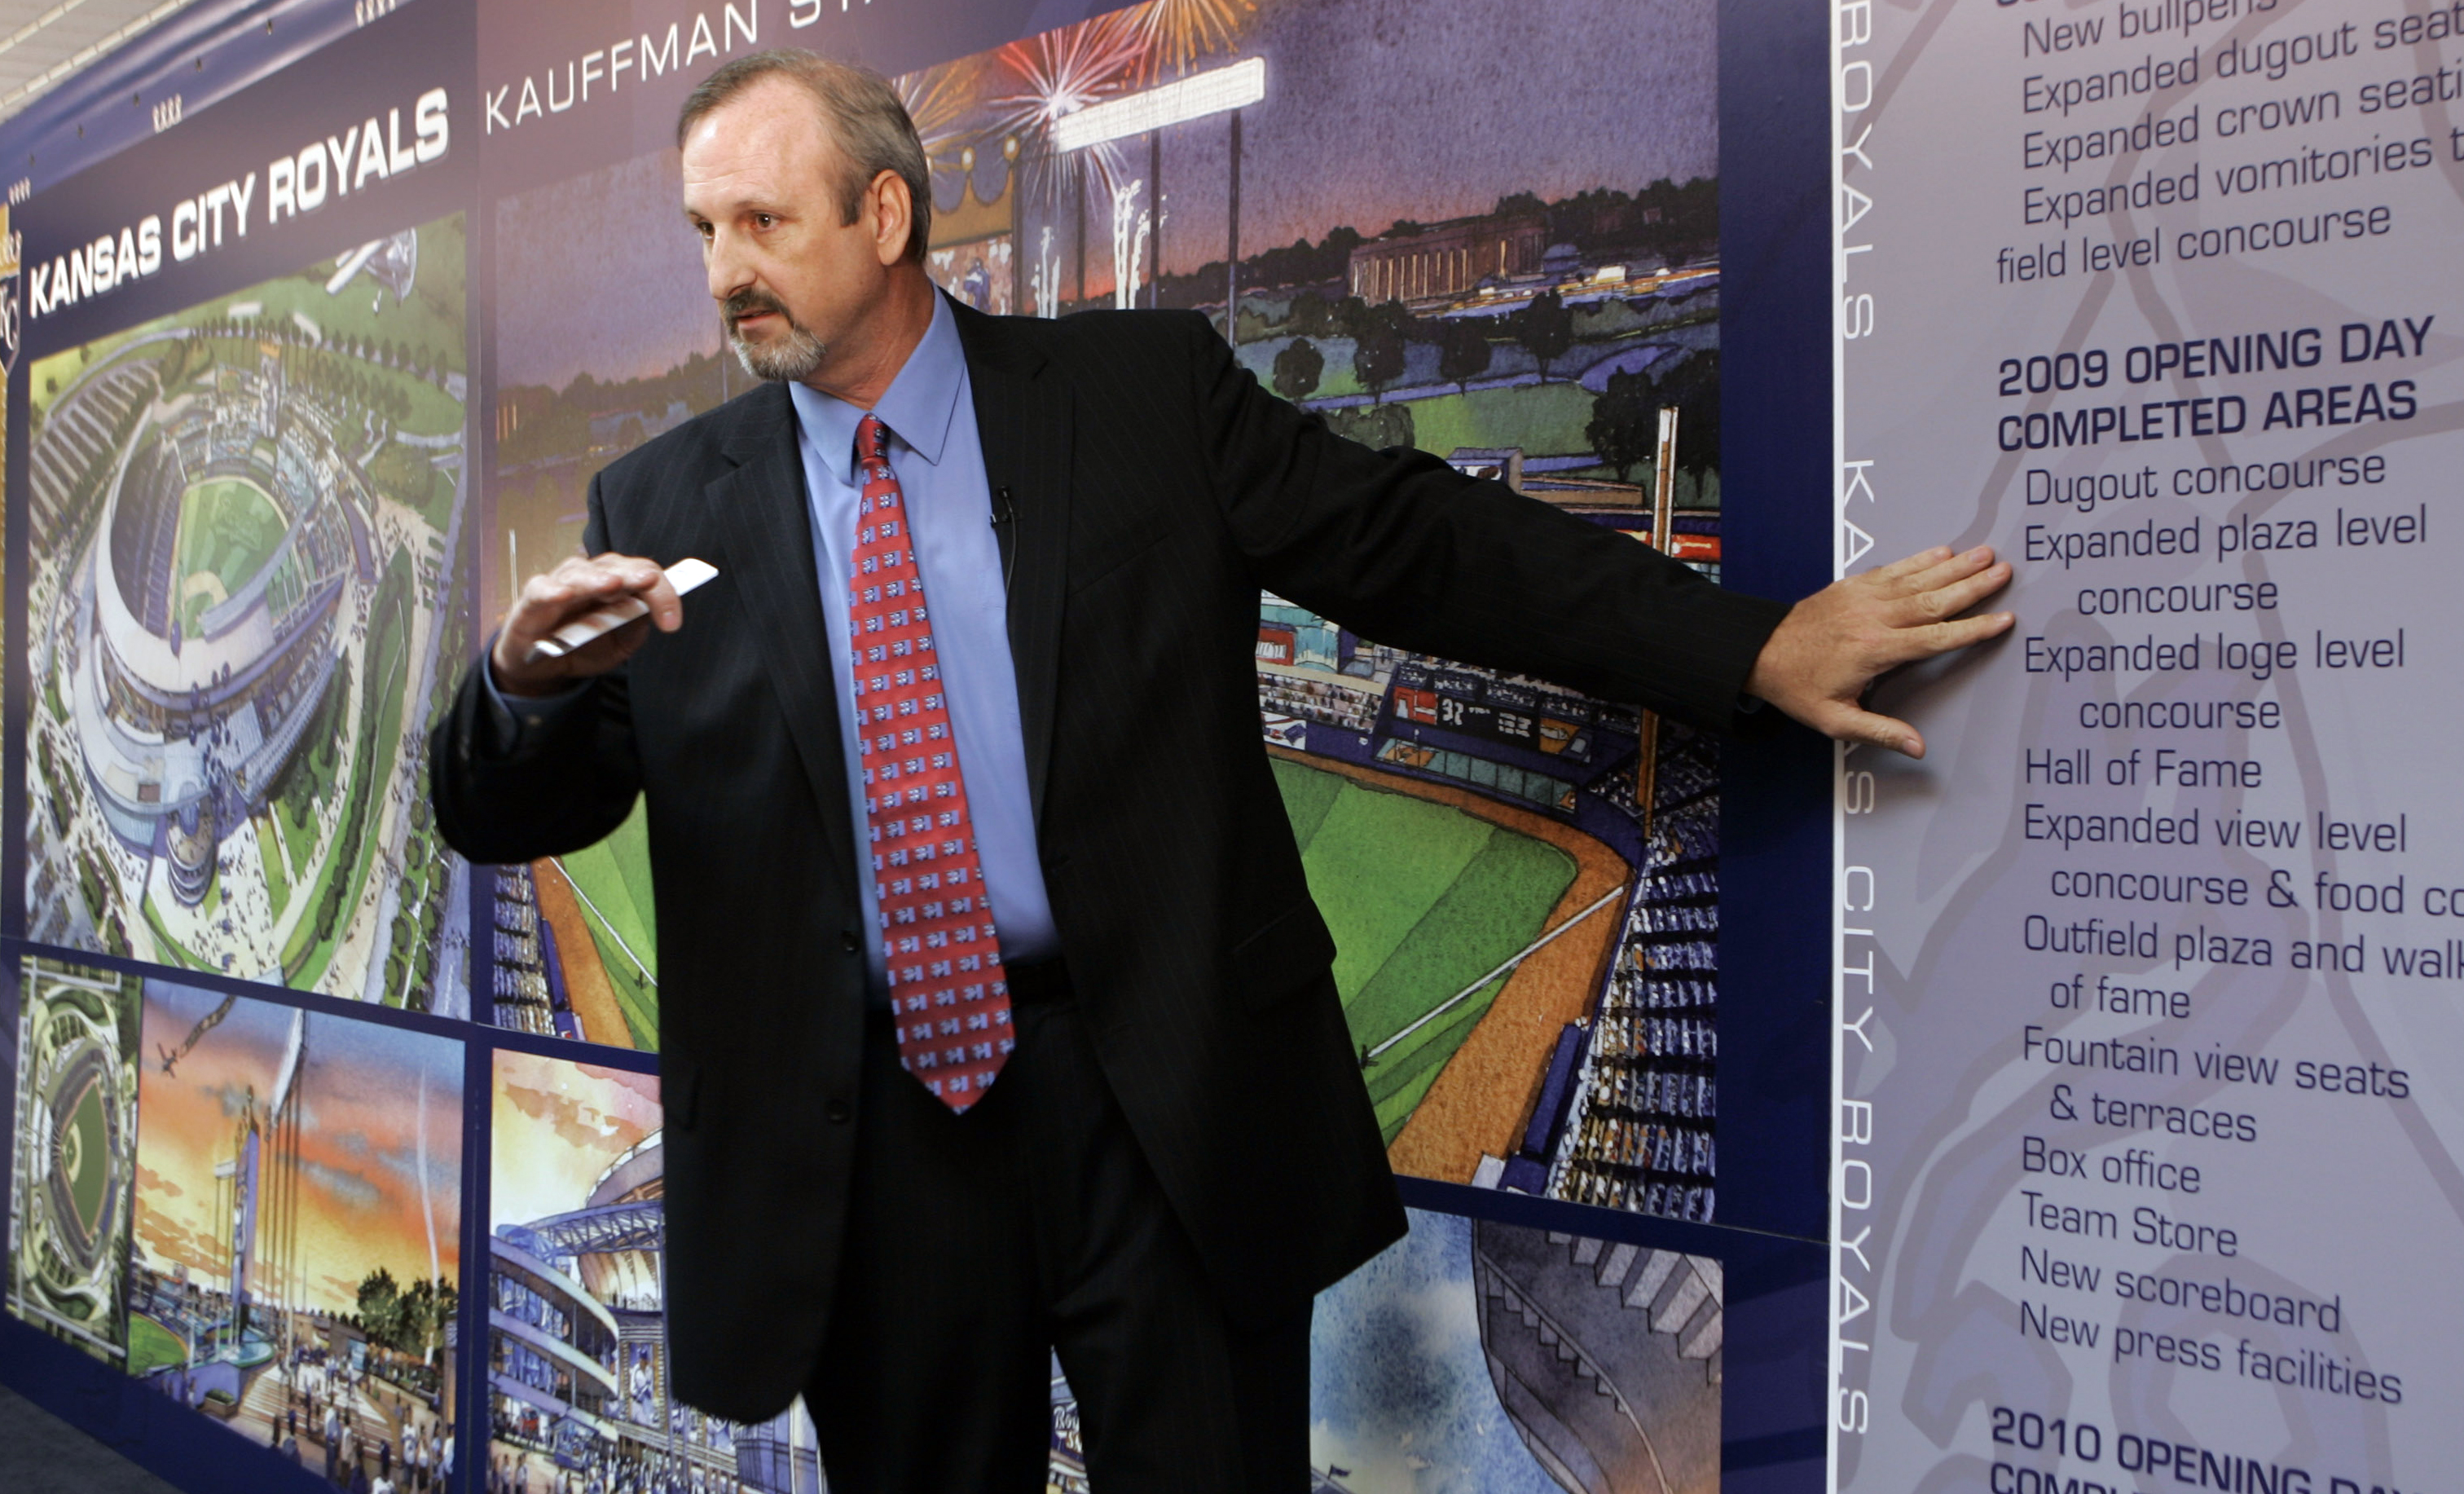 FILE - In May 21, 2007 file photo, Earl Santee, of the stadium architectural firm HOK, talks about plans for the $250 million renovation of Kauffman Stadium in Kansas City, Mo  Over nearly three decades, Santee and Joe Spear  have built Kansas City-based